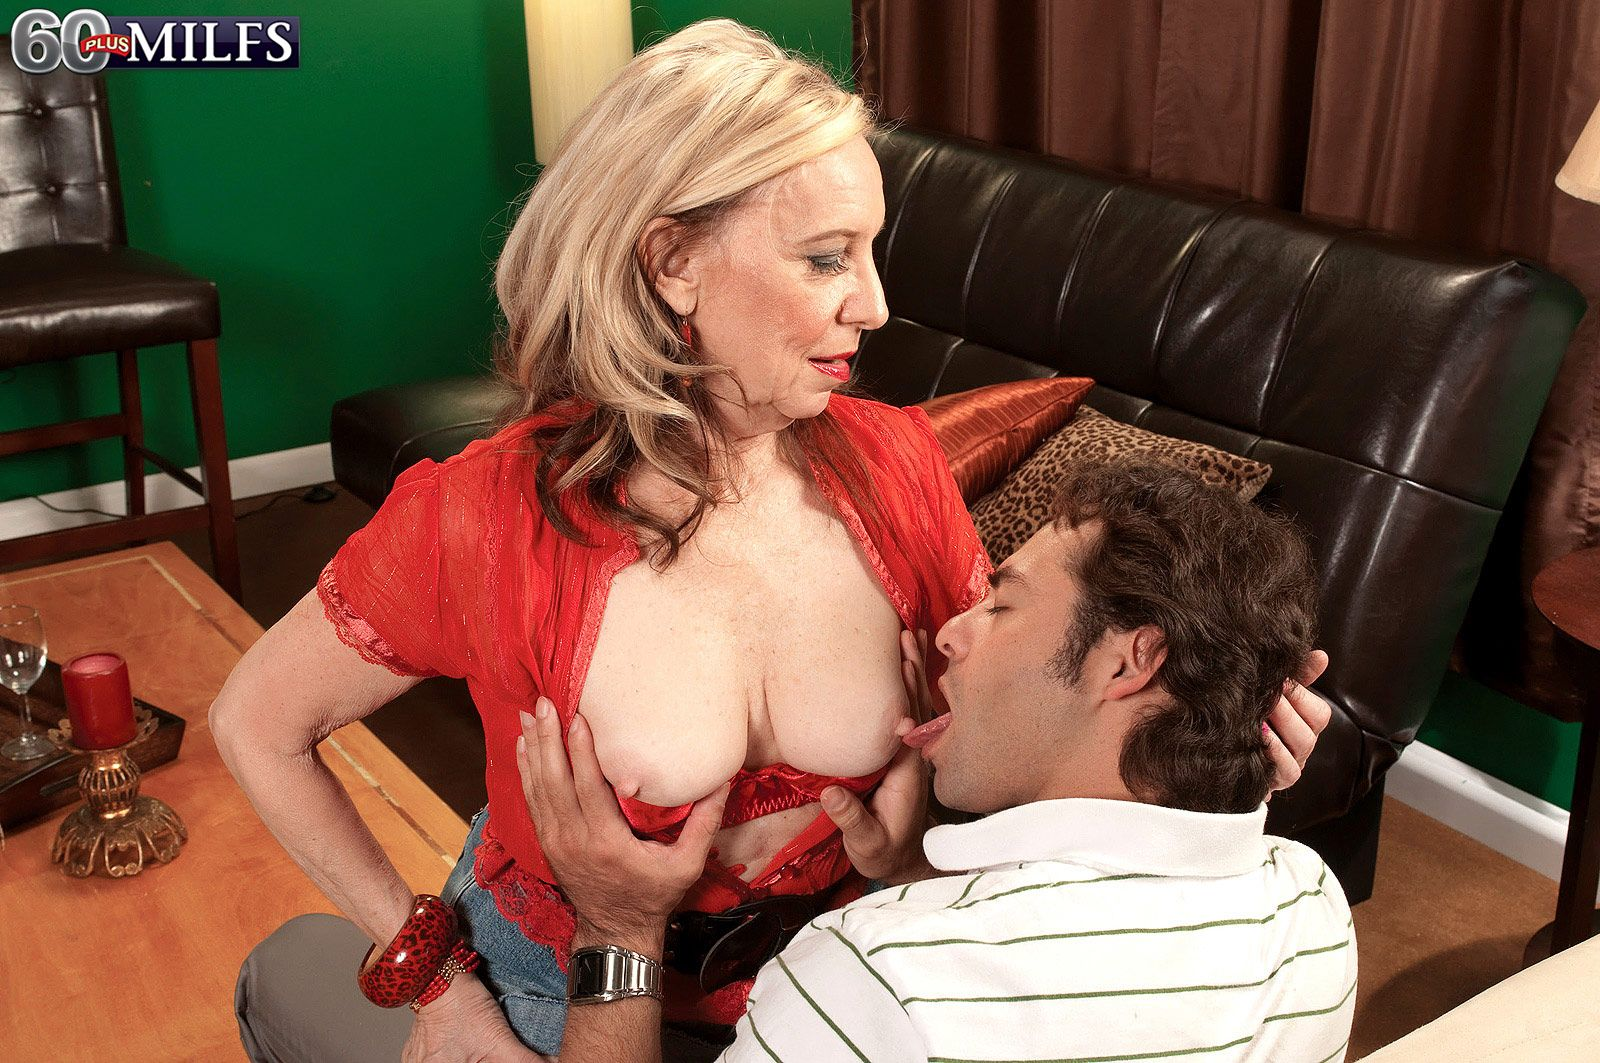 Sexy older blonde hikes up her skirt while seducing a younger gentleman